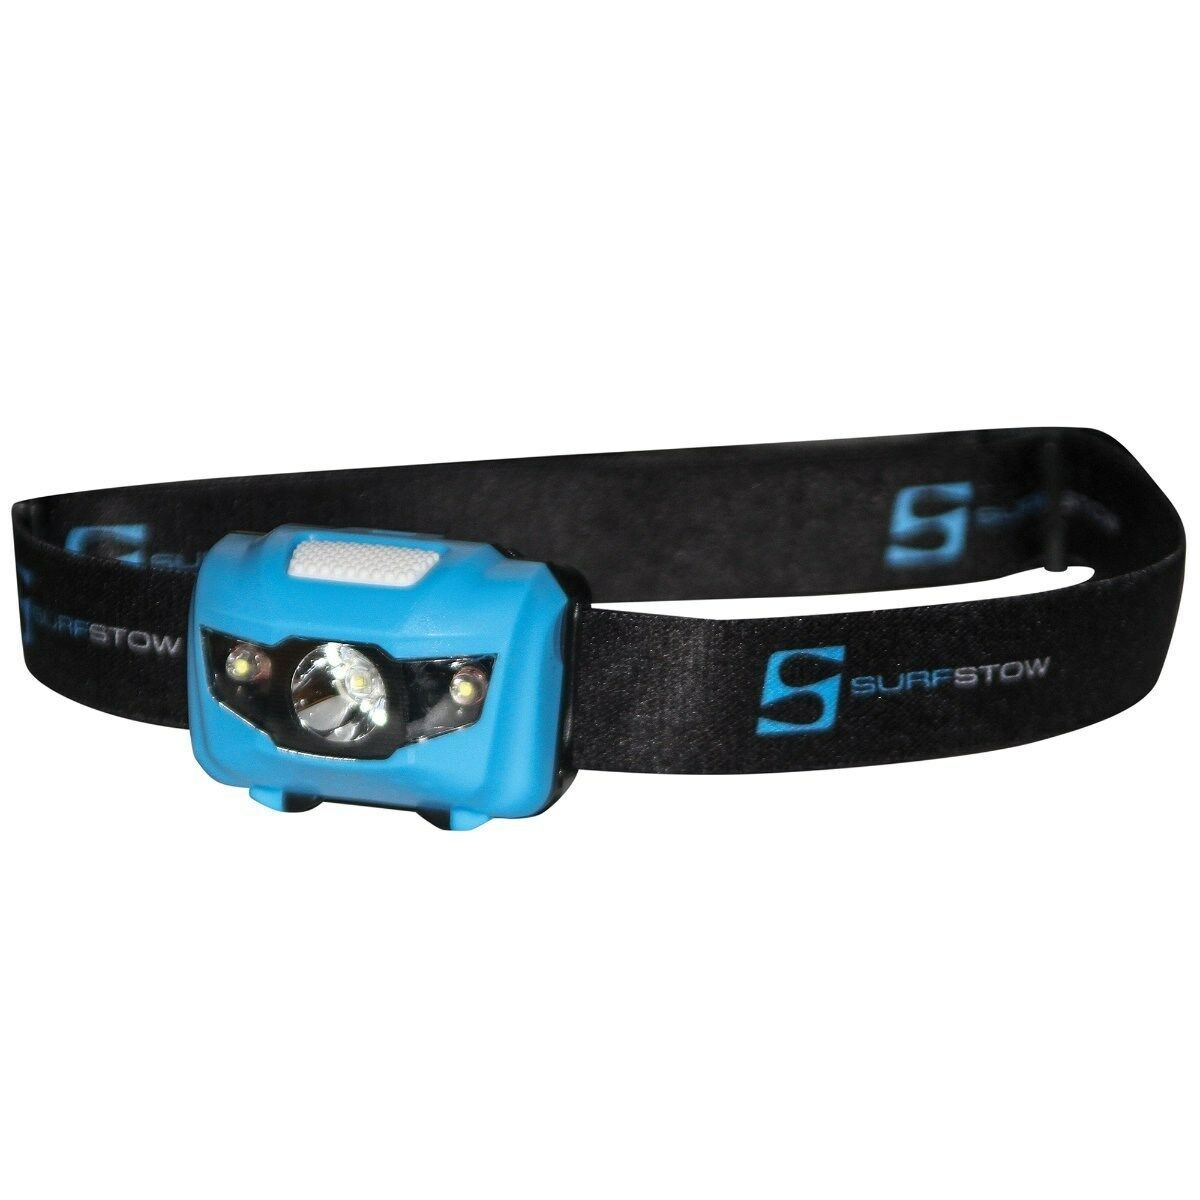 SURFSTOW GLO Stand-Up Paddleboard LED Headlamp and Mountable Light